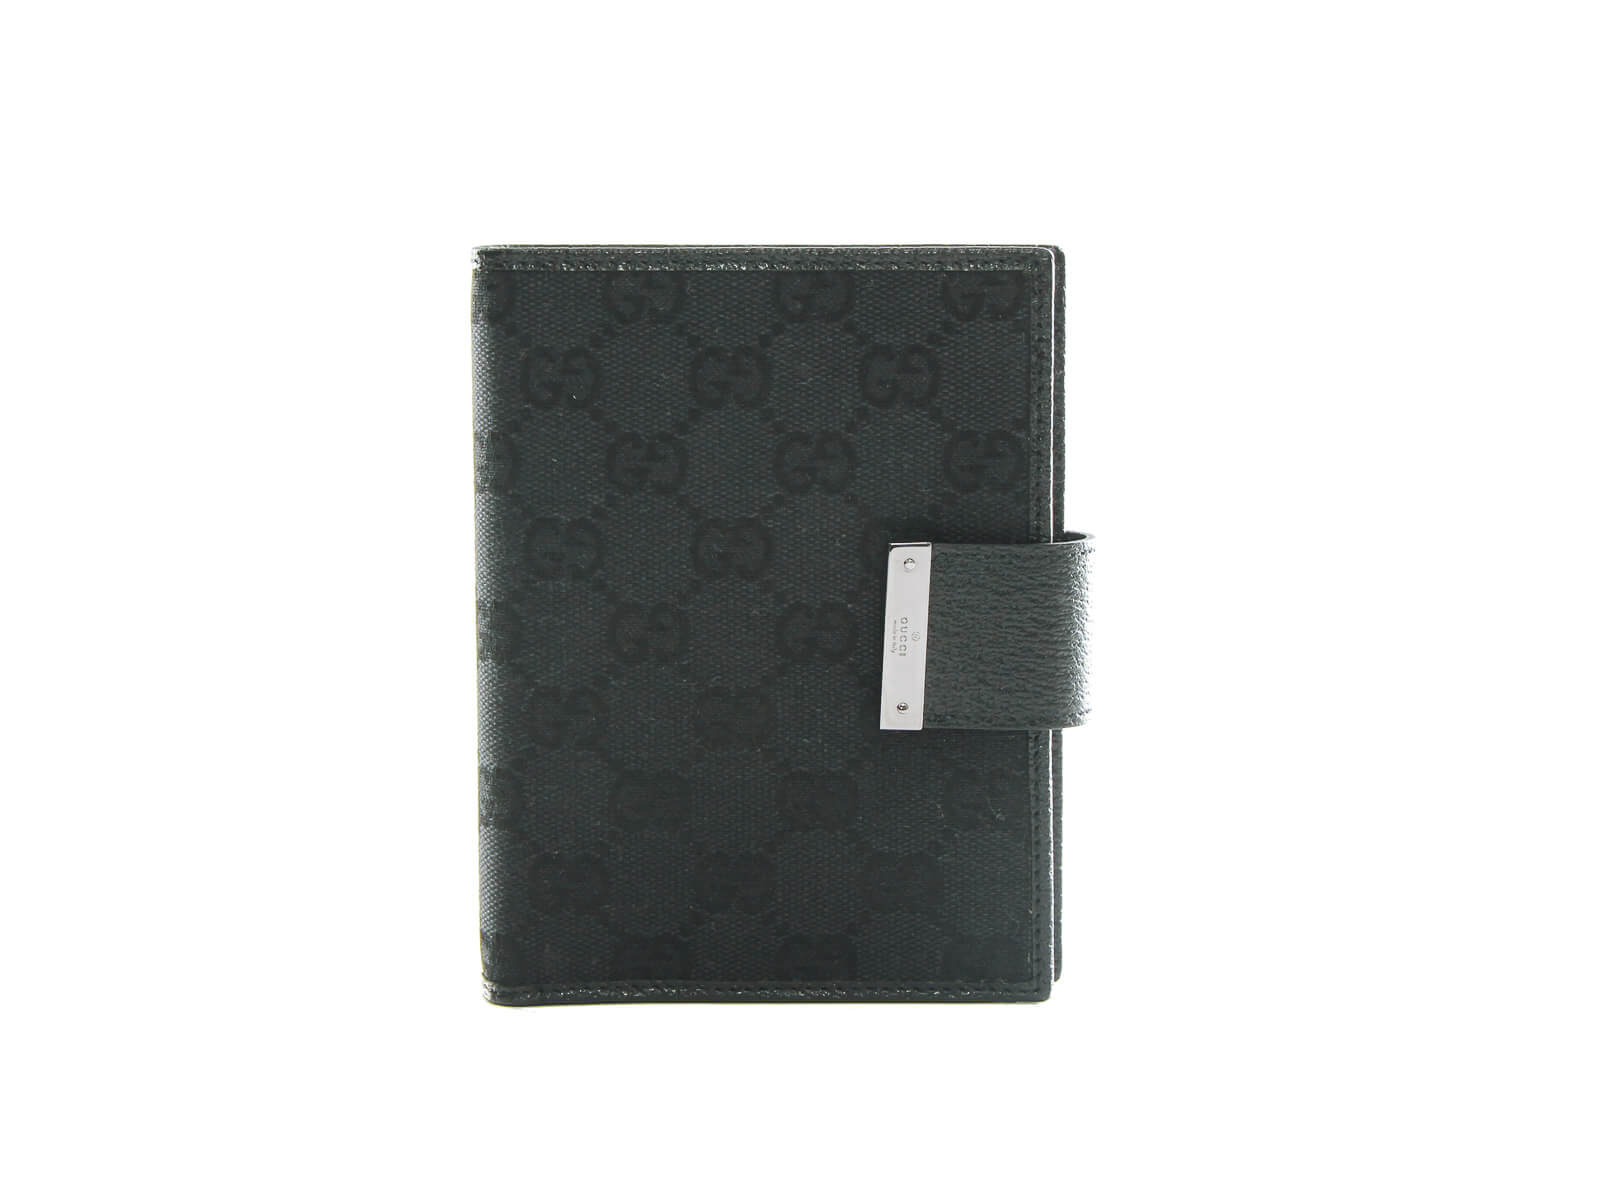 Authentic Gucci Web Black GG Logos Pattern Agenda Notebook Cover